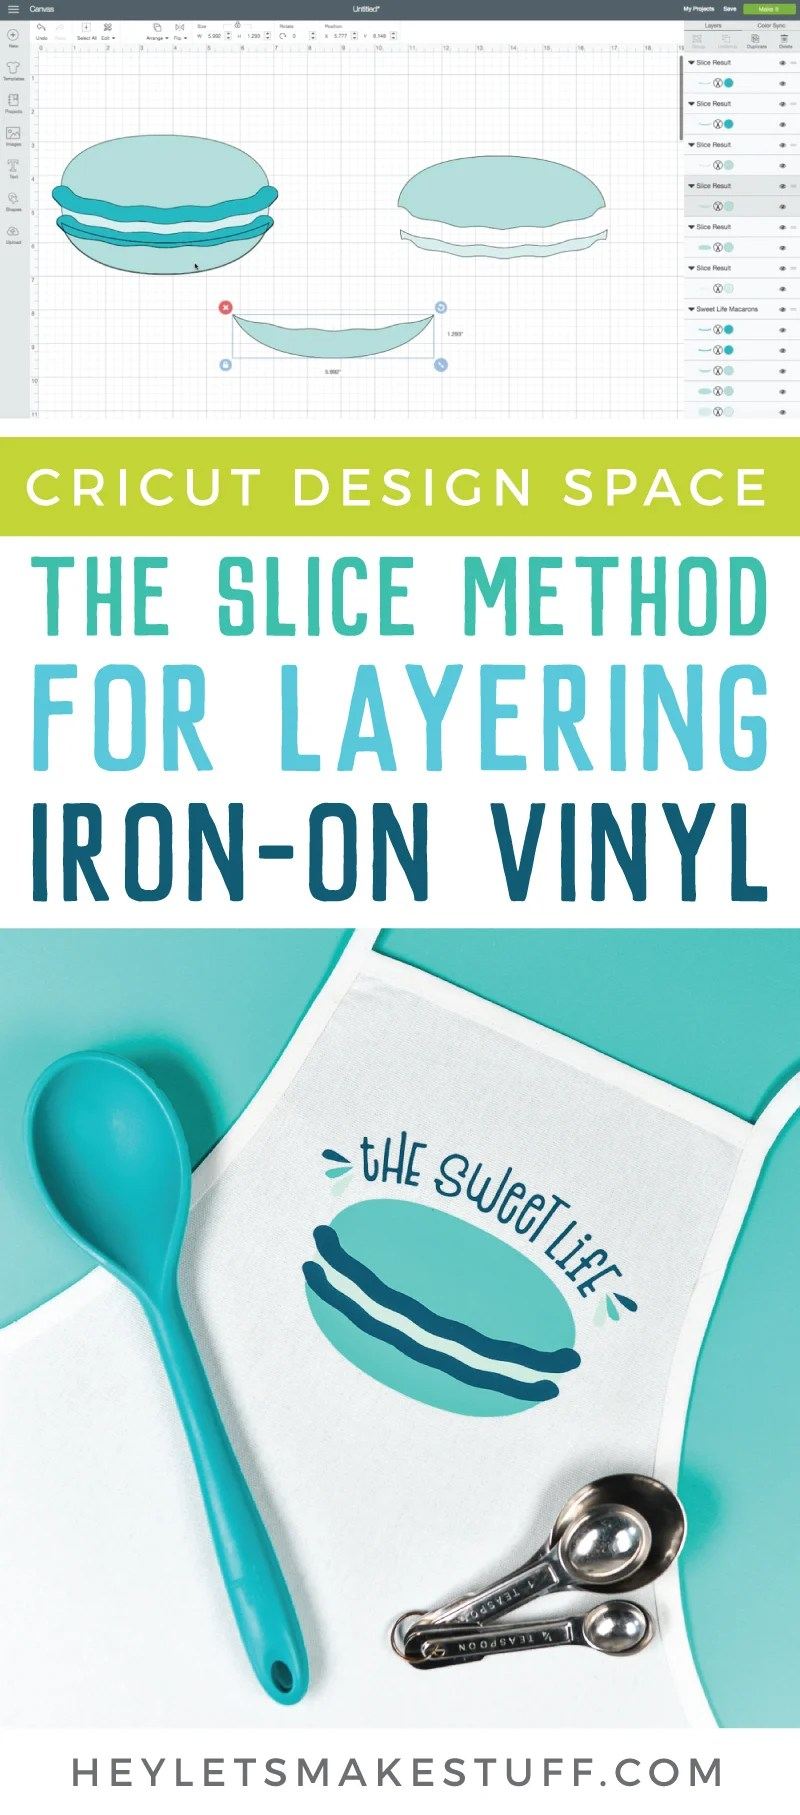 There are so many fun projects and crafts you can make with vinyl. I'll show you how to use the slice method for layering vinyl. via @heyletsmakestuf